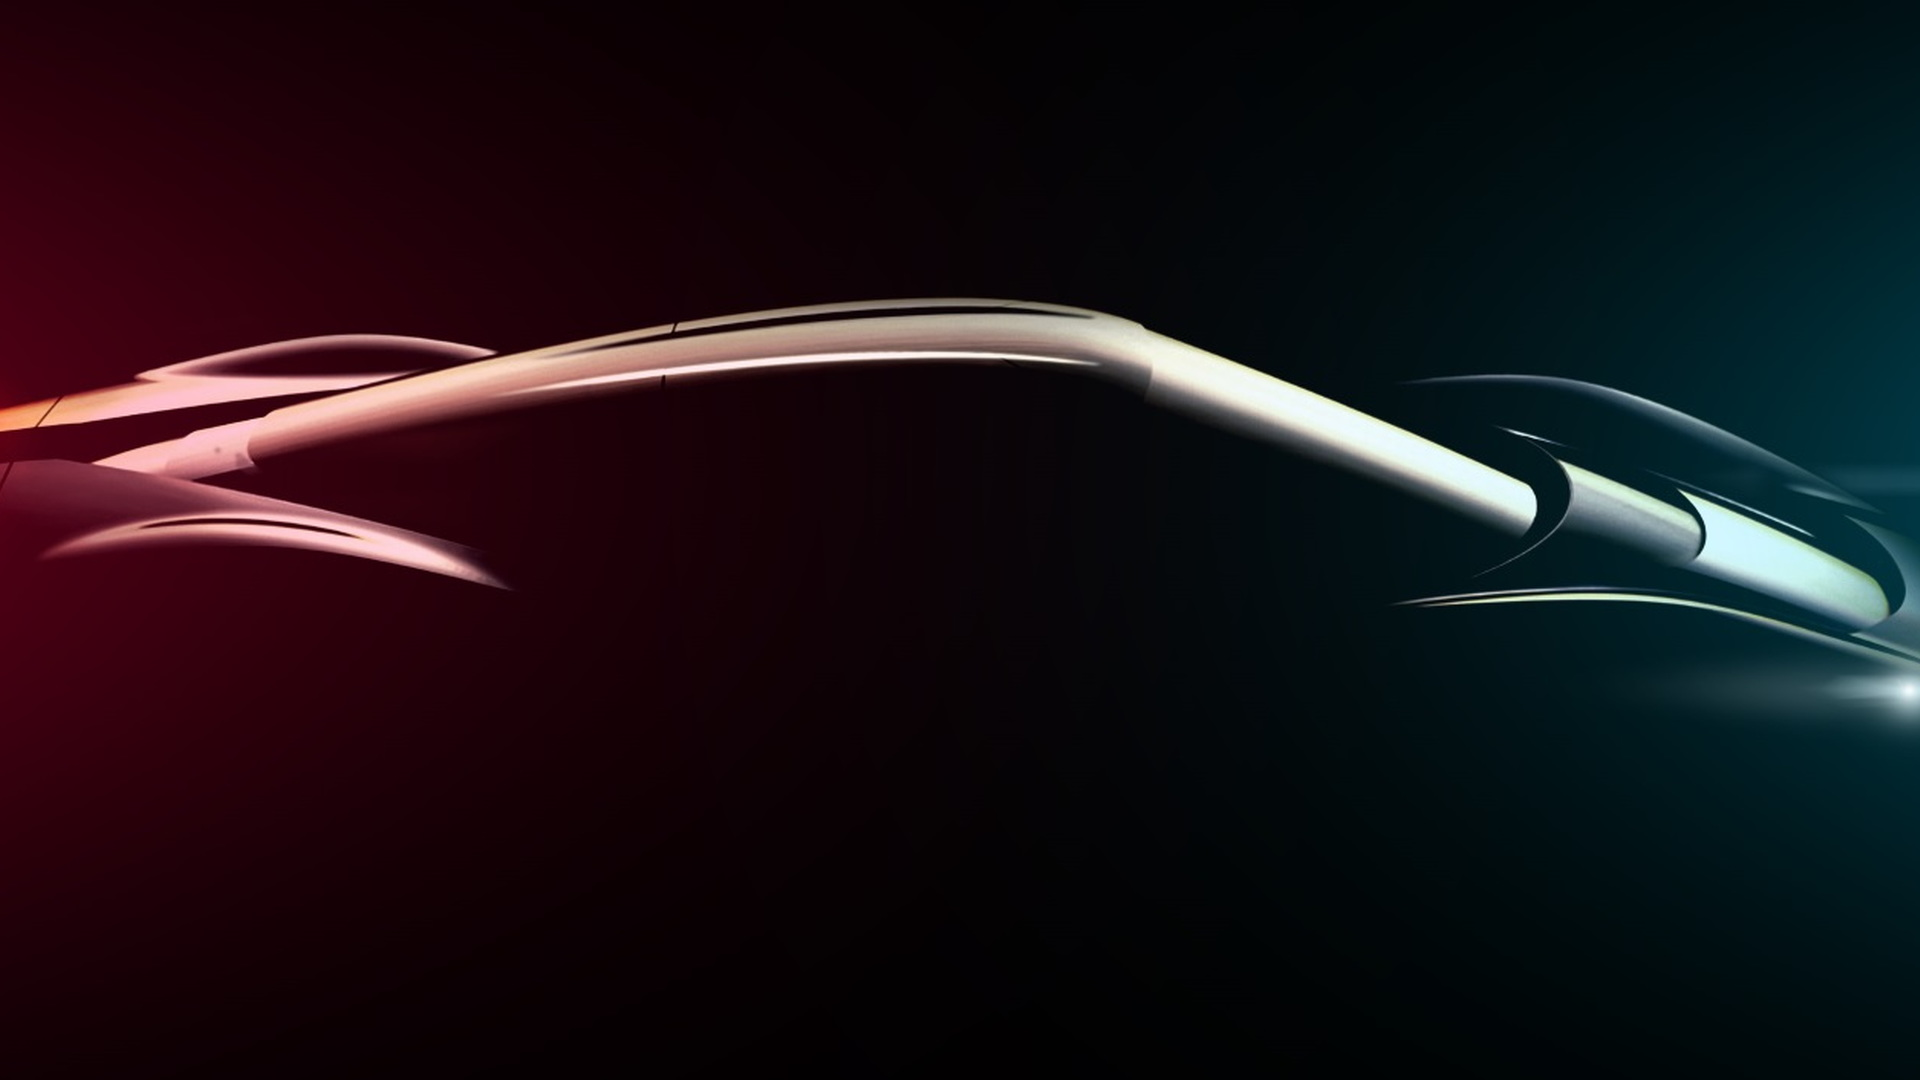 Teaser for Pininfarina PF0 electric hypercar debuting at 2019 Geneva auto show